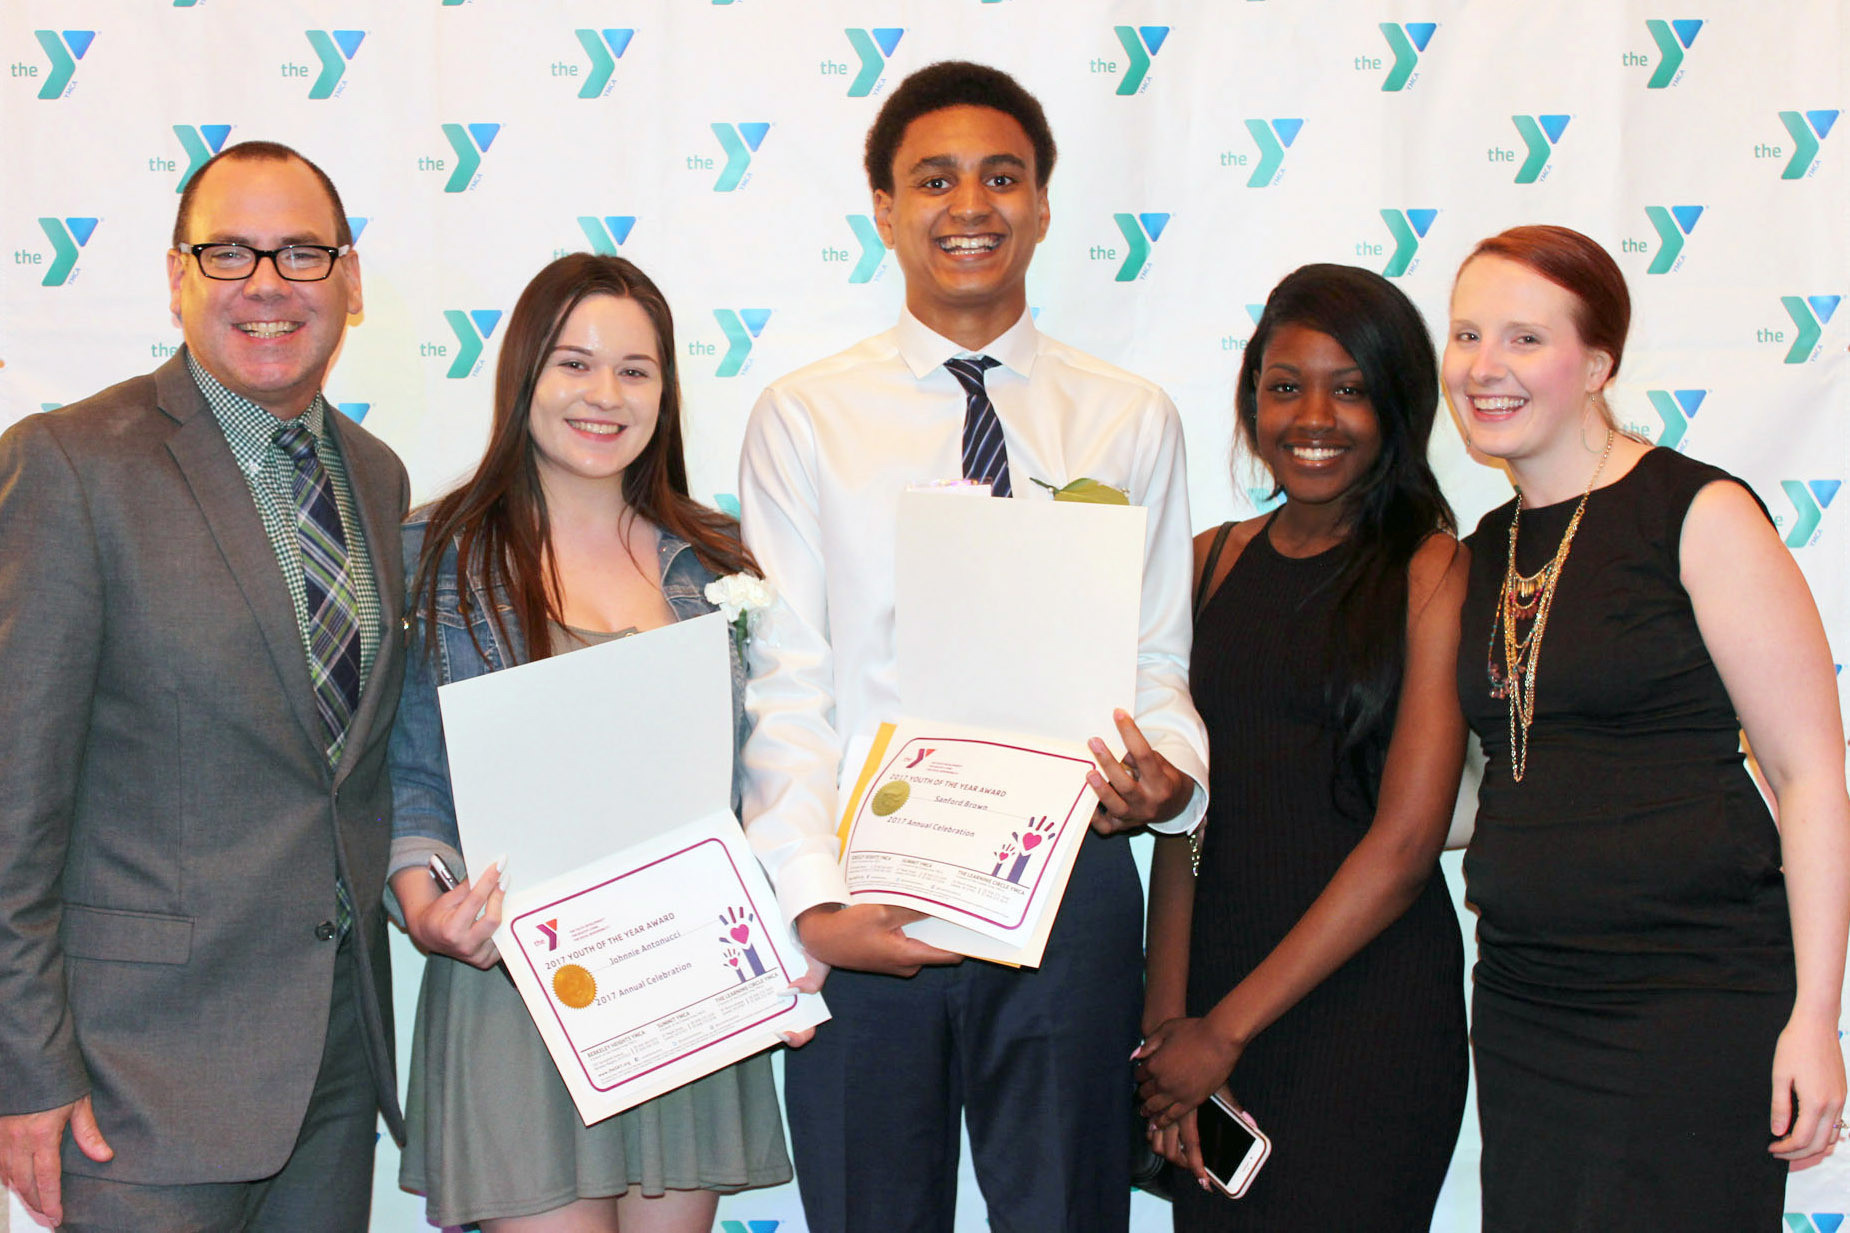 Summit Area YMCA awards Dwight Giles Scholarship to 5 High School Teens